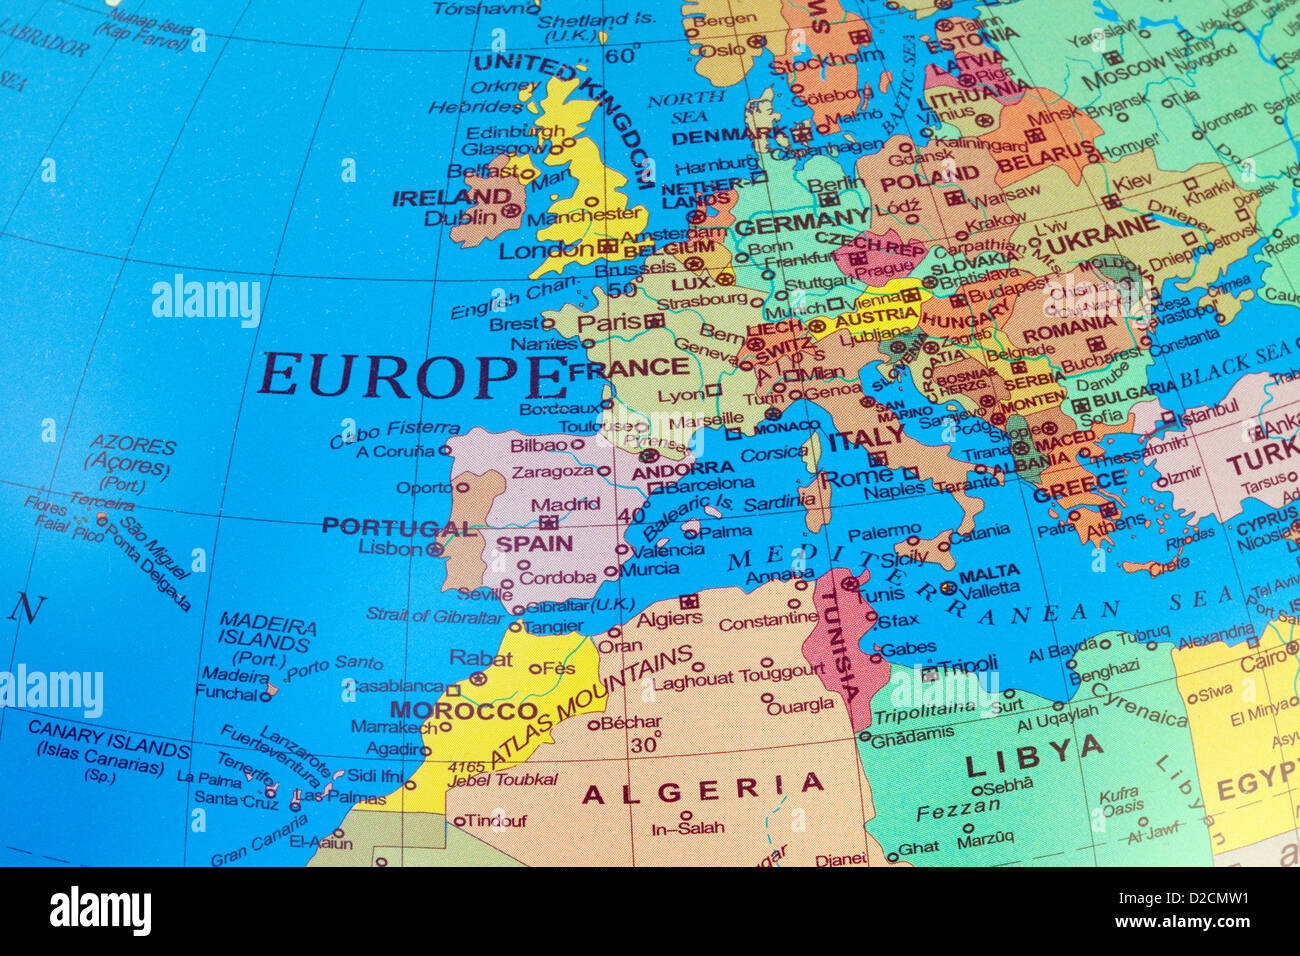 A Map Of Europe And North Africa On A Globe Stock Photo